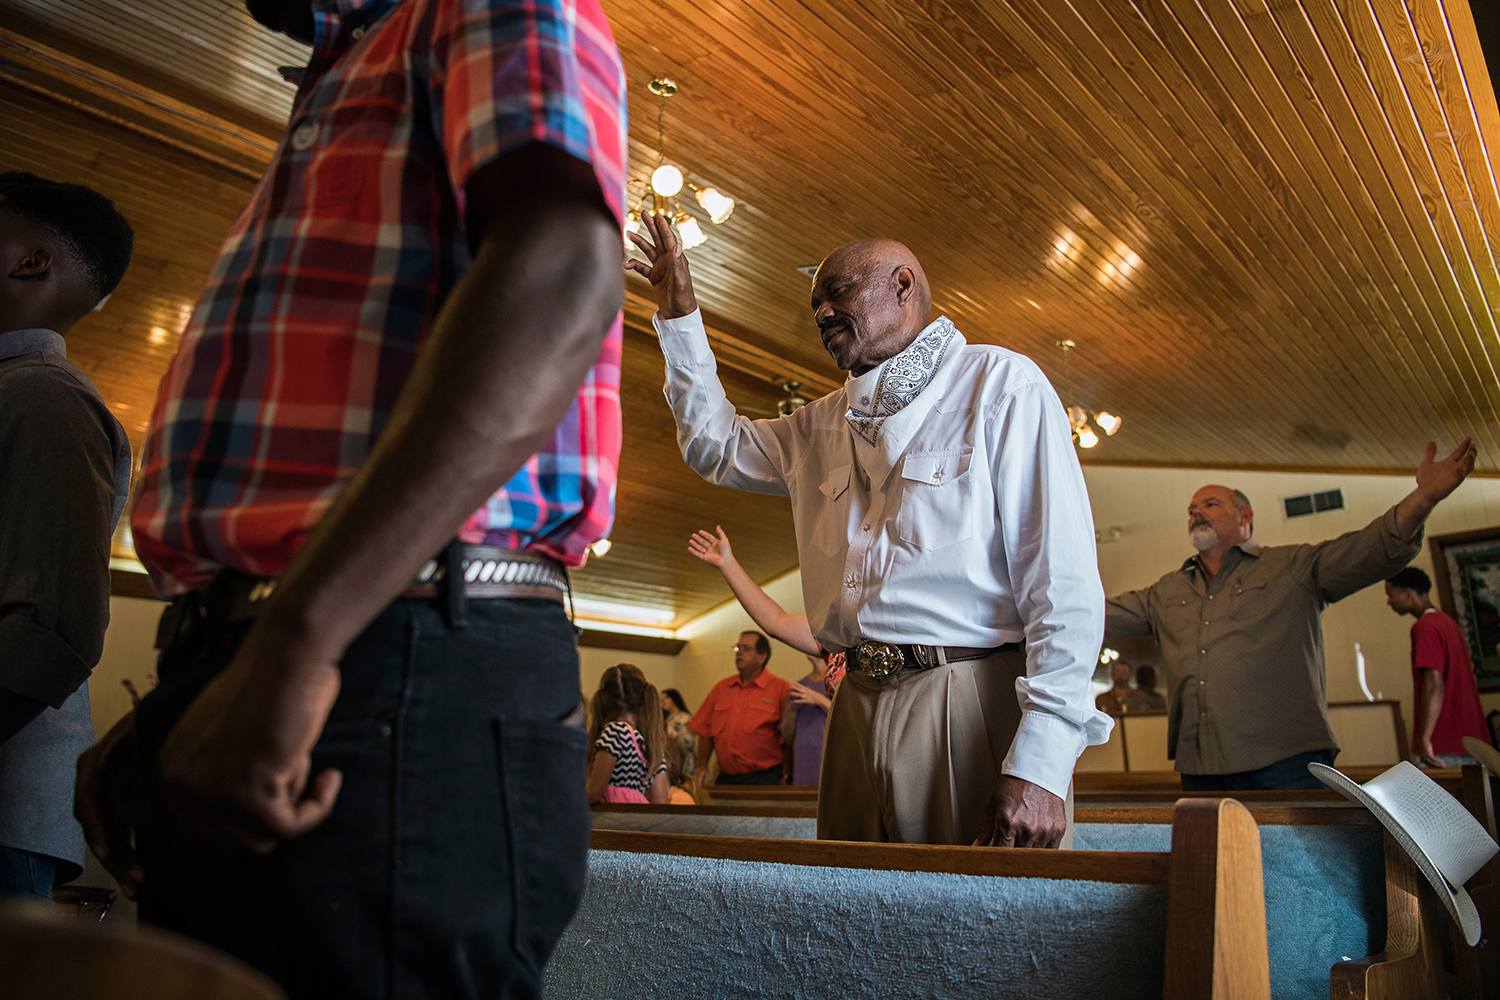 A cowboy named Archie sings at a Cowboy Service in Indianola, Mississippi. Photo by Rory Doyle.